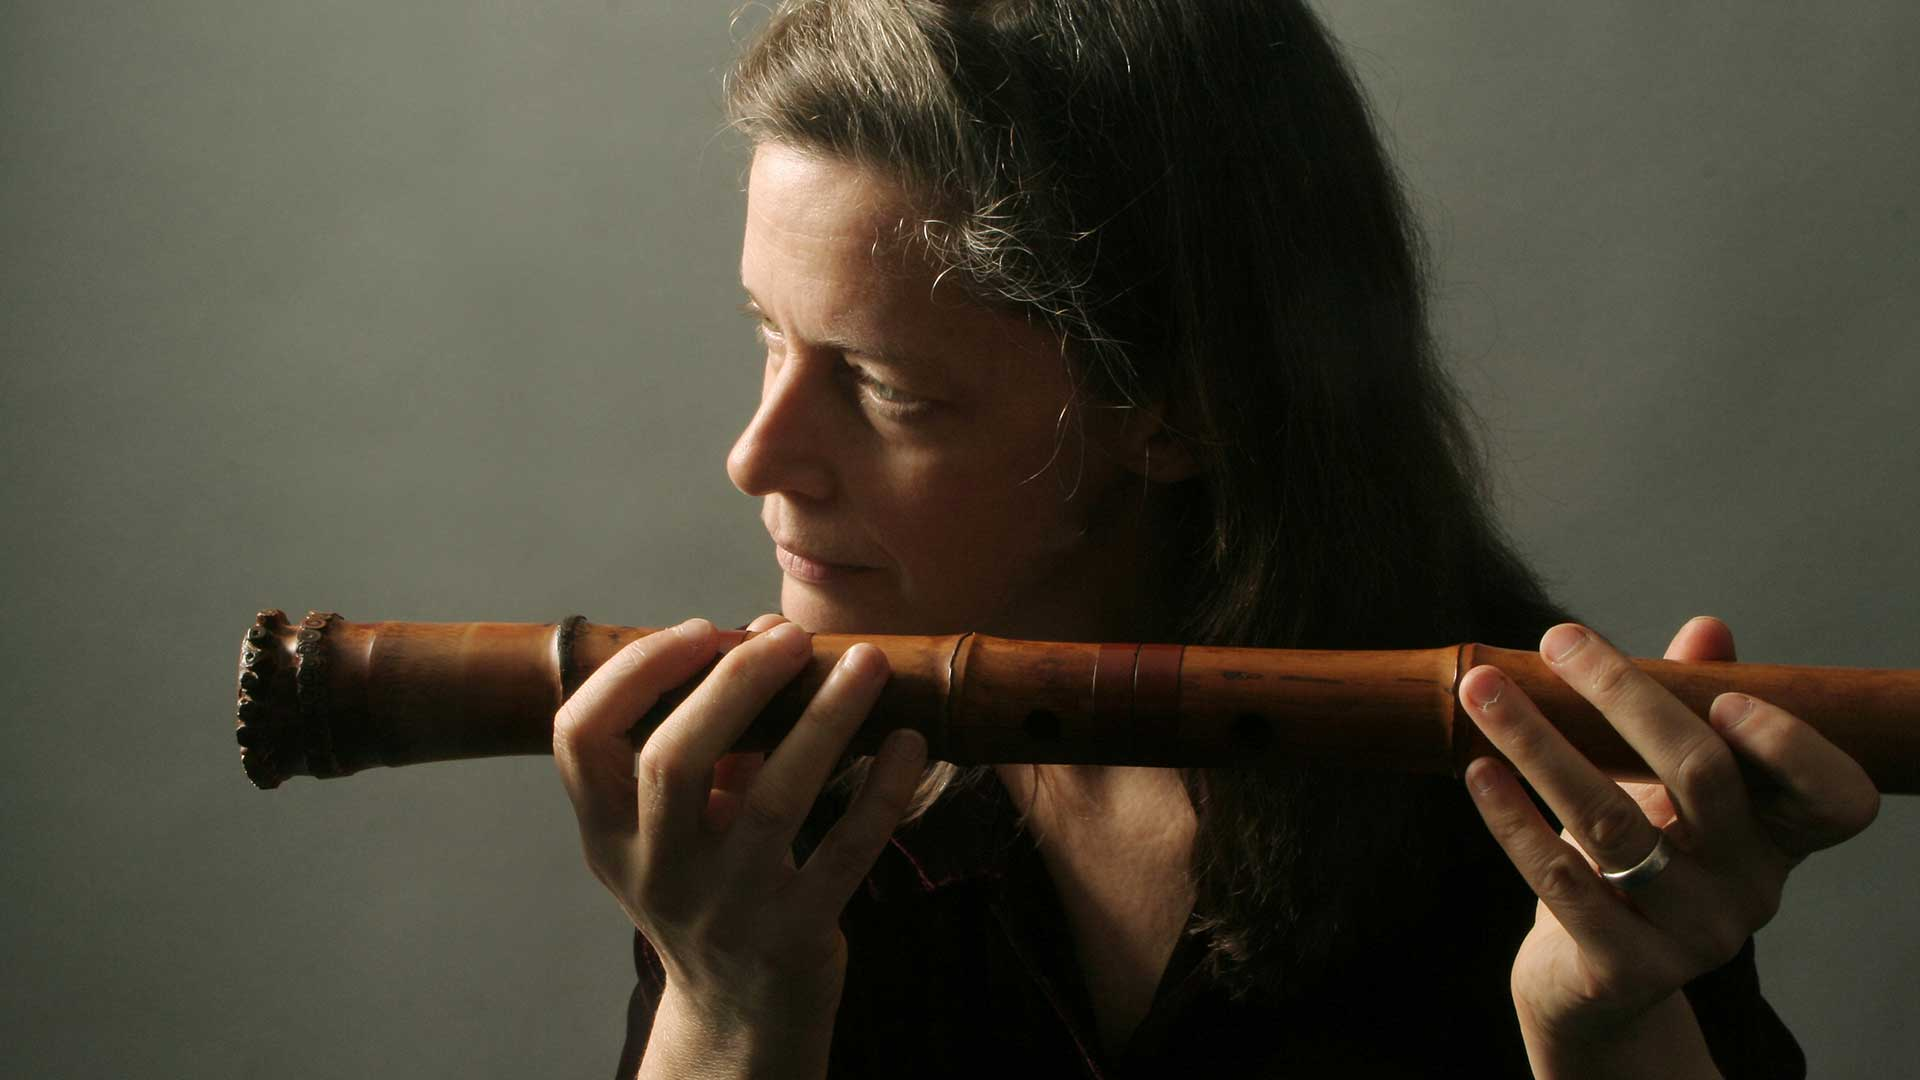 Elizabeth Brown with shakuhachi